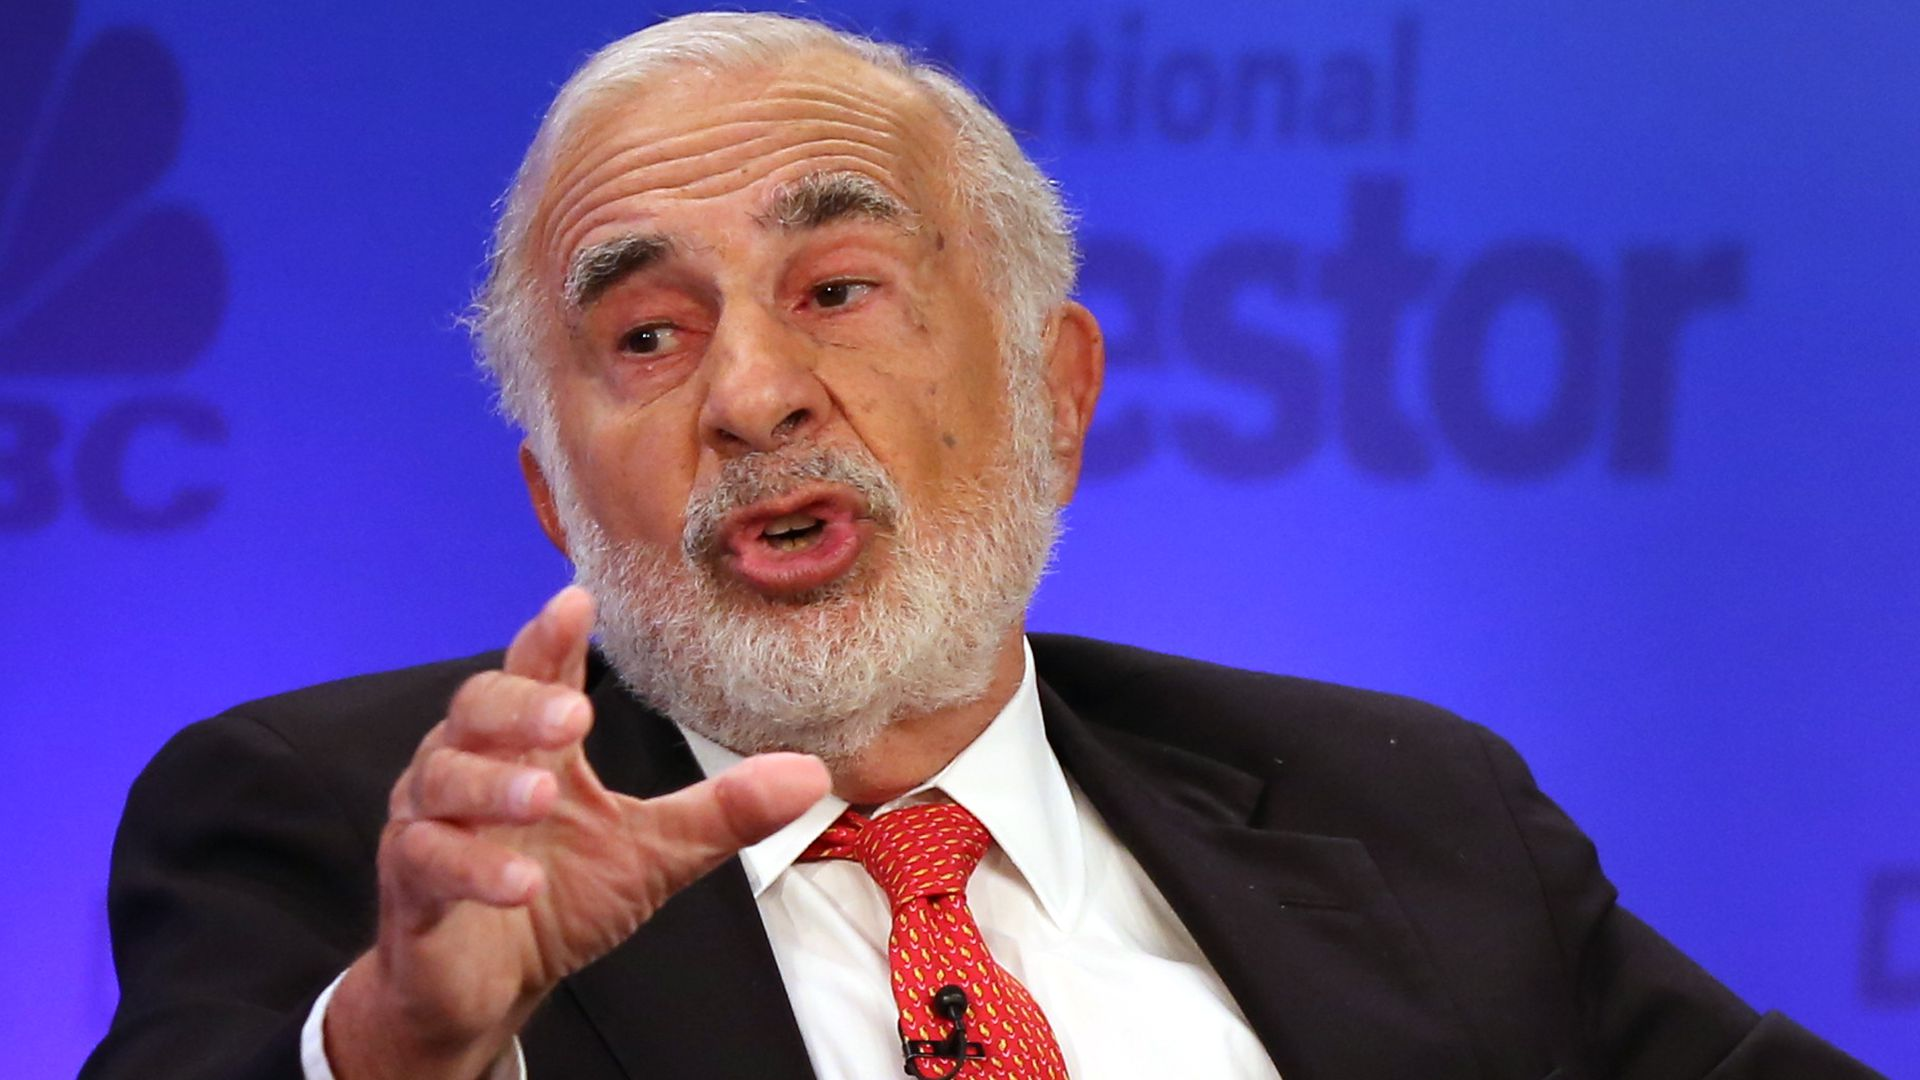 Carl Icahn speaks at a CNBC event.